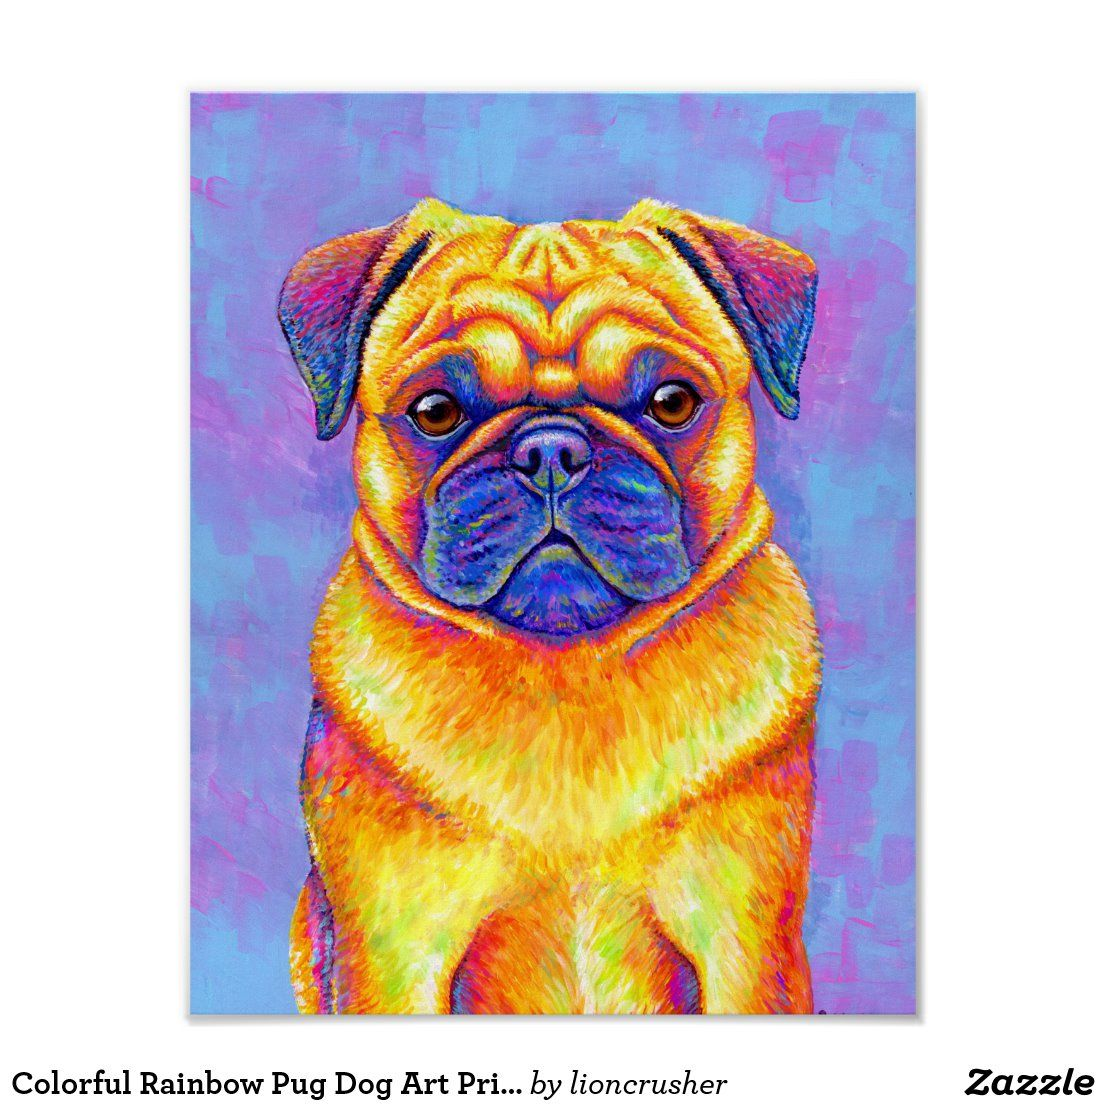 Colorful Rainbow Pug Dog Art Print Zazzle Com In 2020 Cute